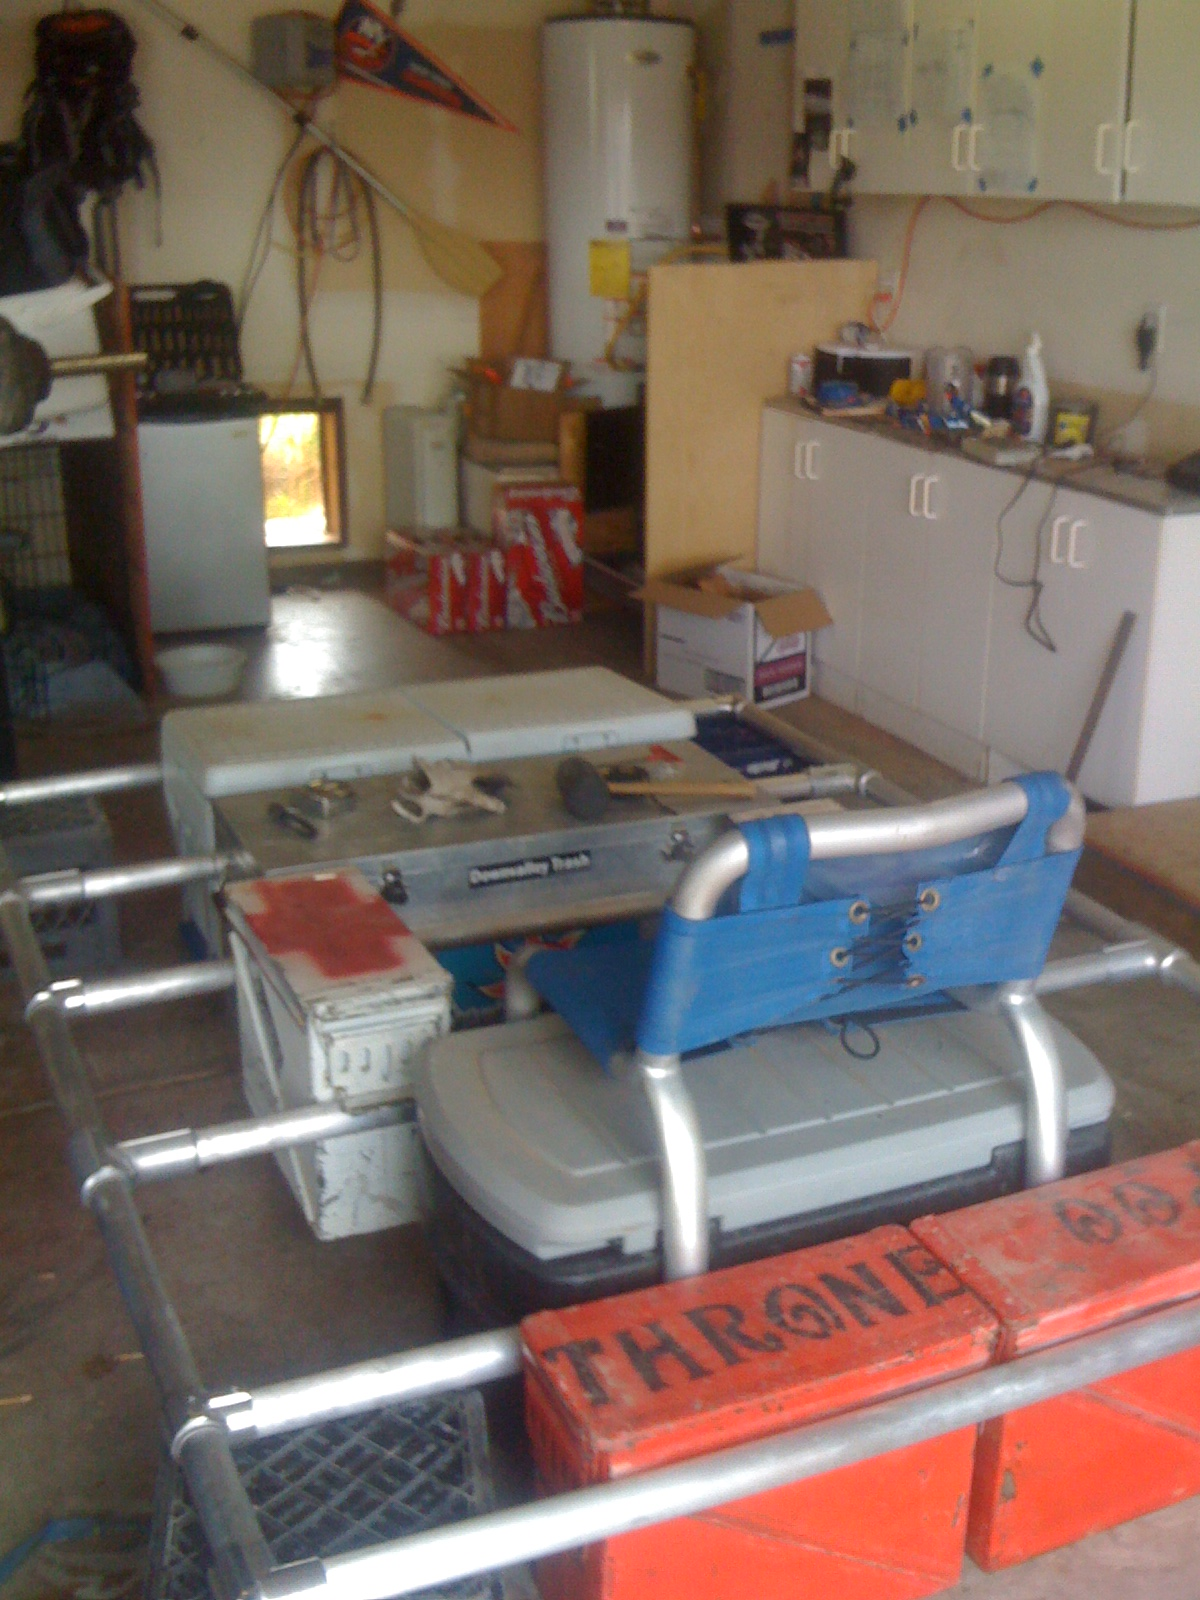 Click image for larger version  Name:New Boat 014.jpg Views:332 Size:618.6 KB ID:4270